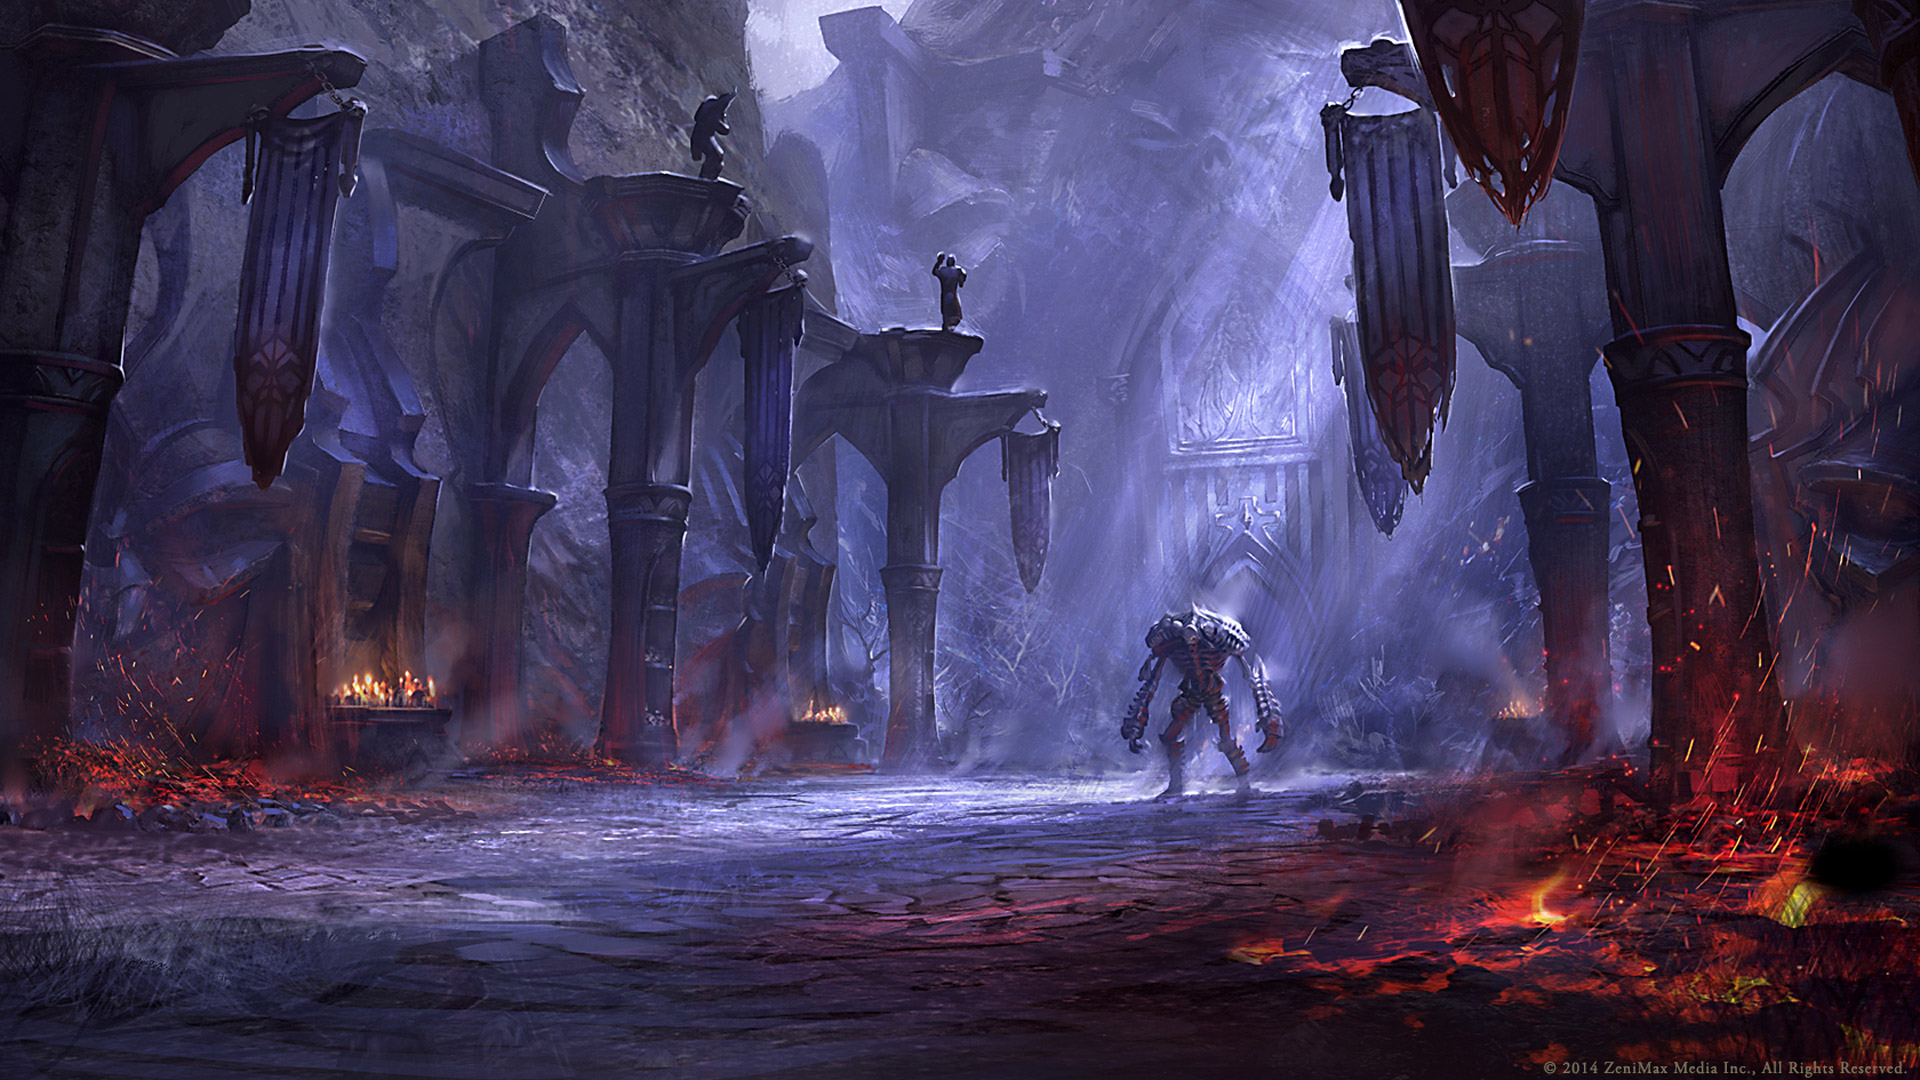 The Elder Scrolls Online Wallpaper in 1920x1080